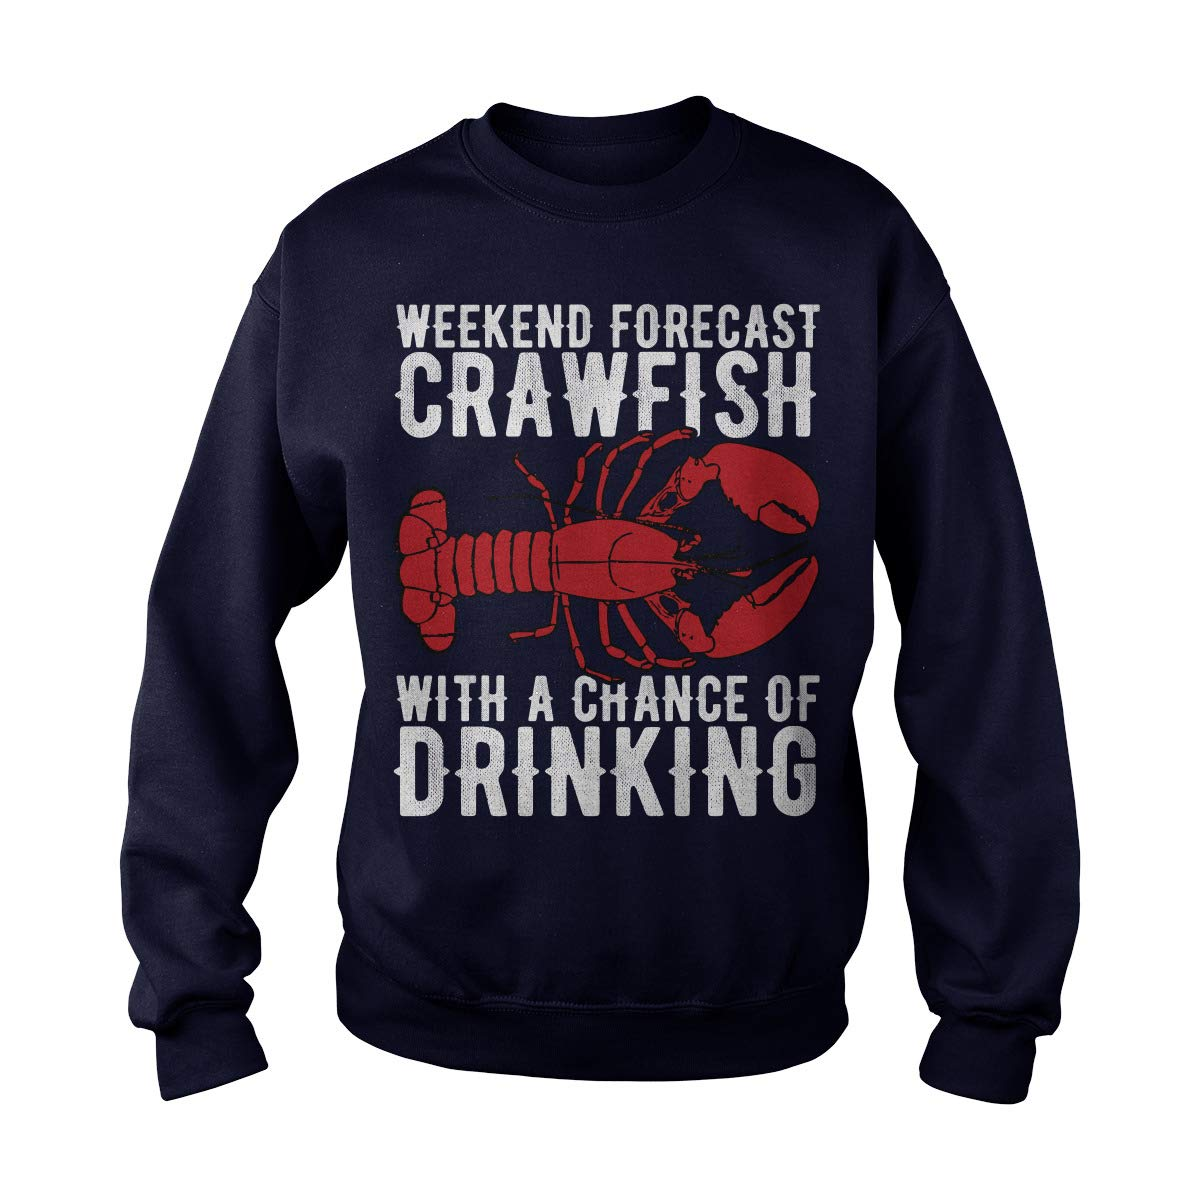 Weekend Forecast Crawfish with A Chance of Drinking Vintage Adult Crewneck Sweatshirt